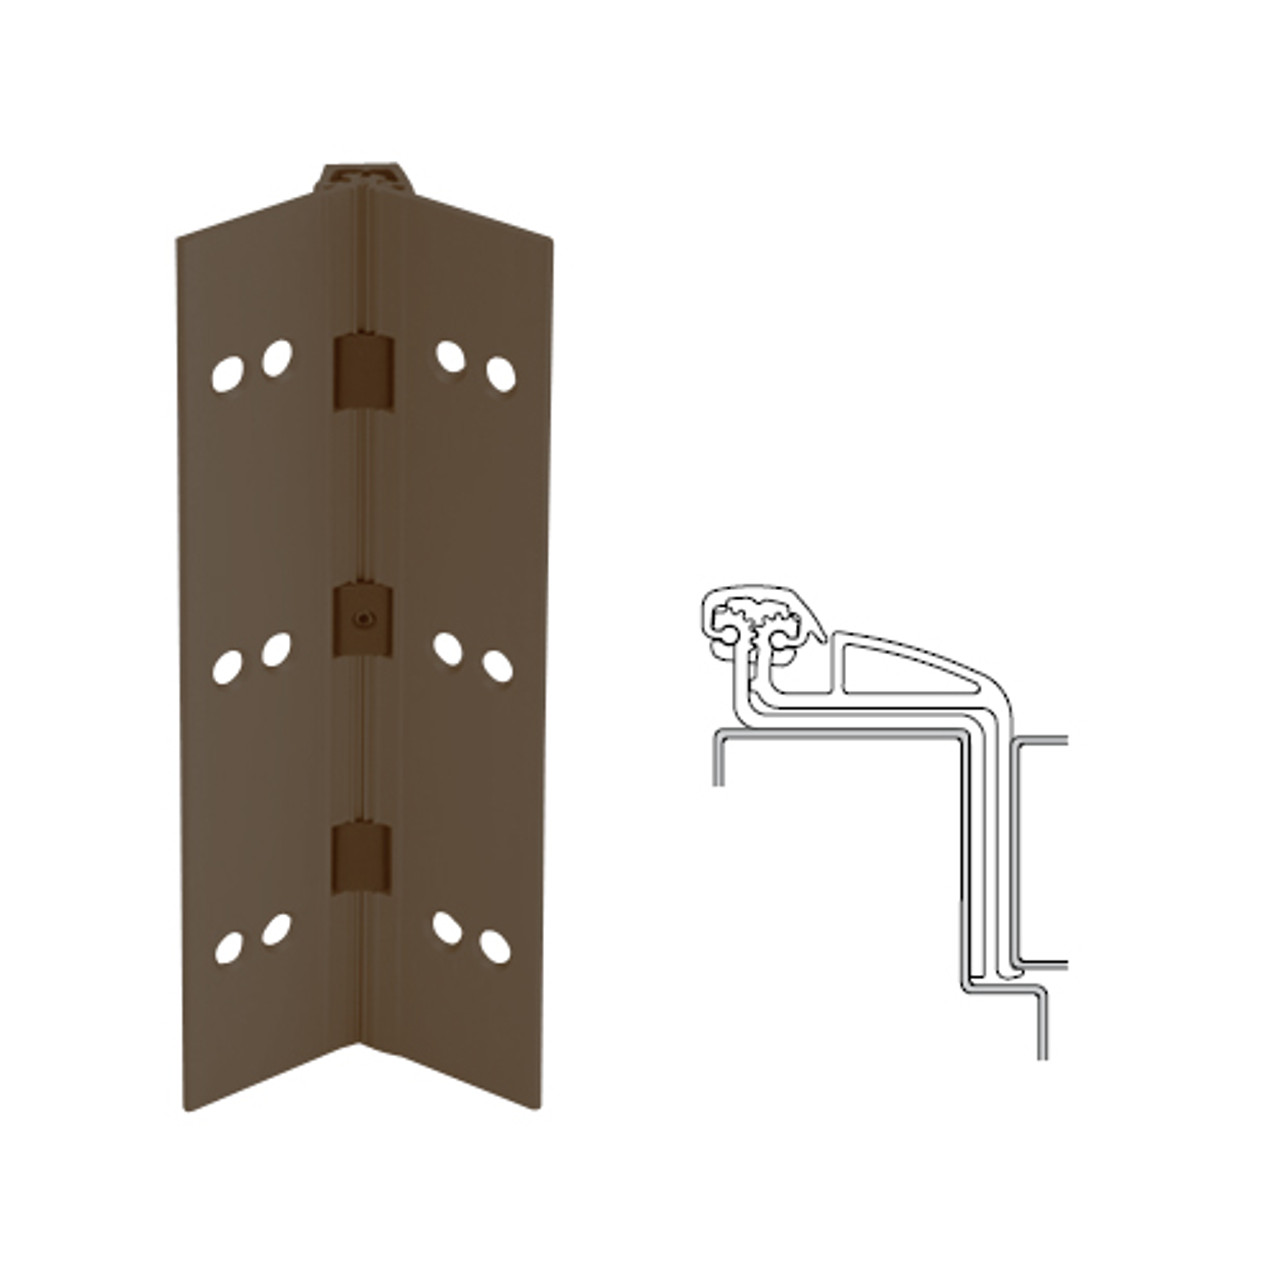 041XY-313AN-95-WD IVES Full Mortise Continuous Geared Hinges with Wood Screws in Dark Bronze Anodized